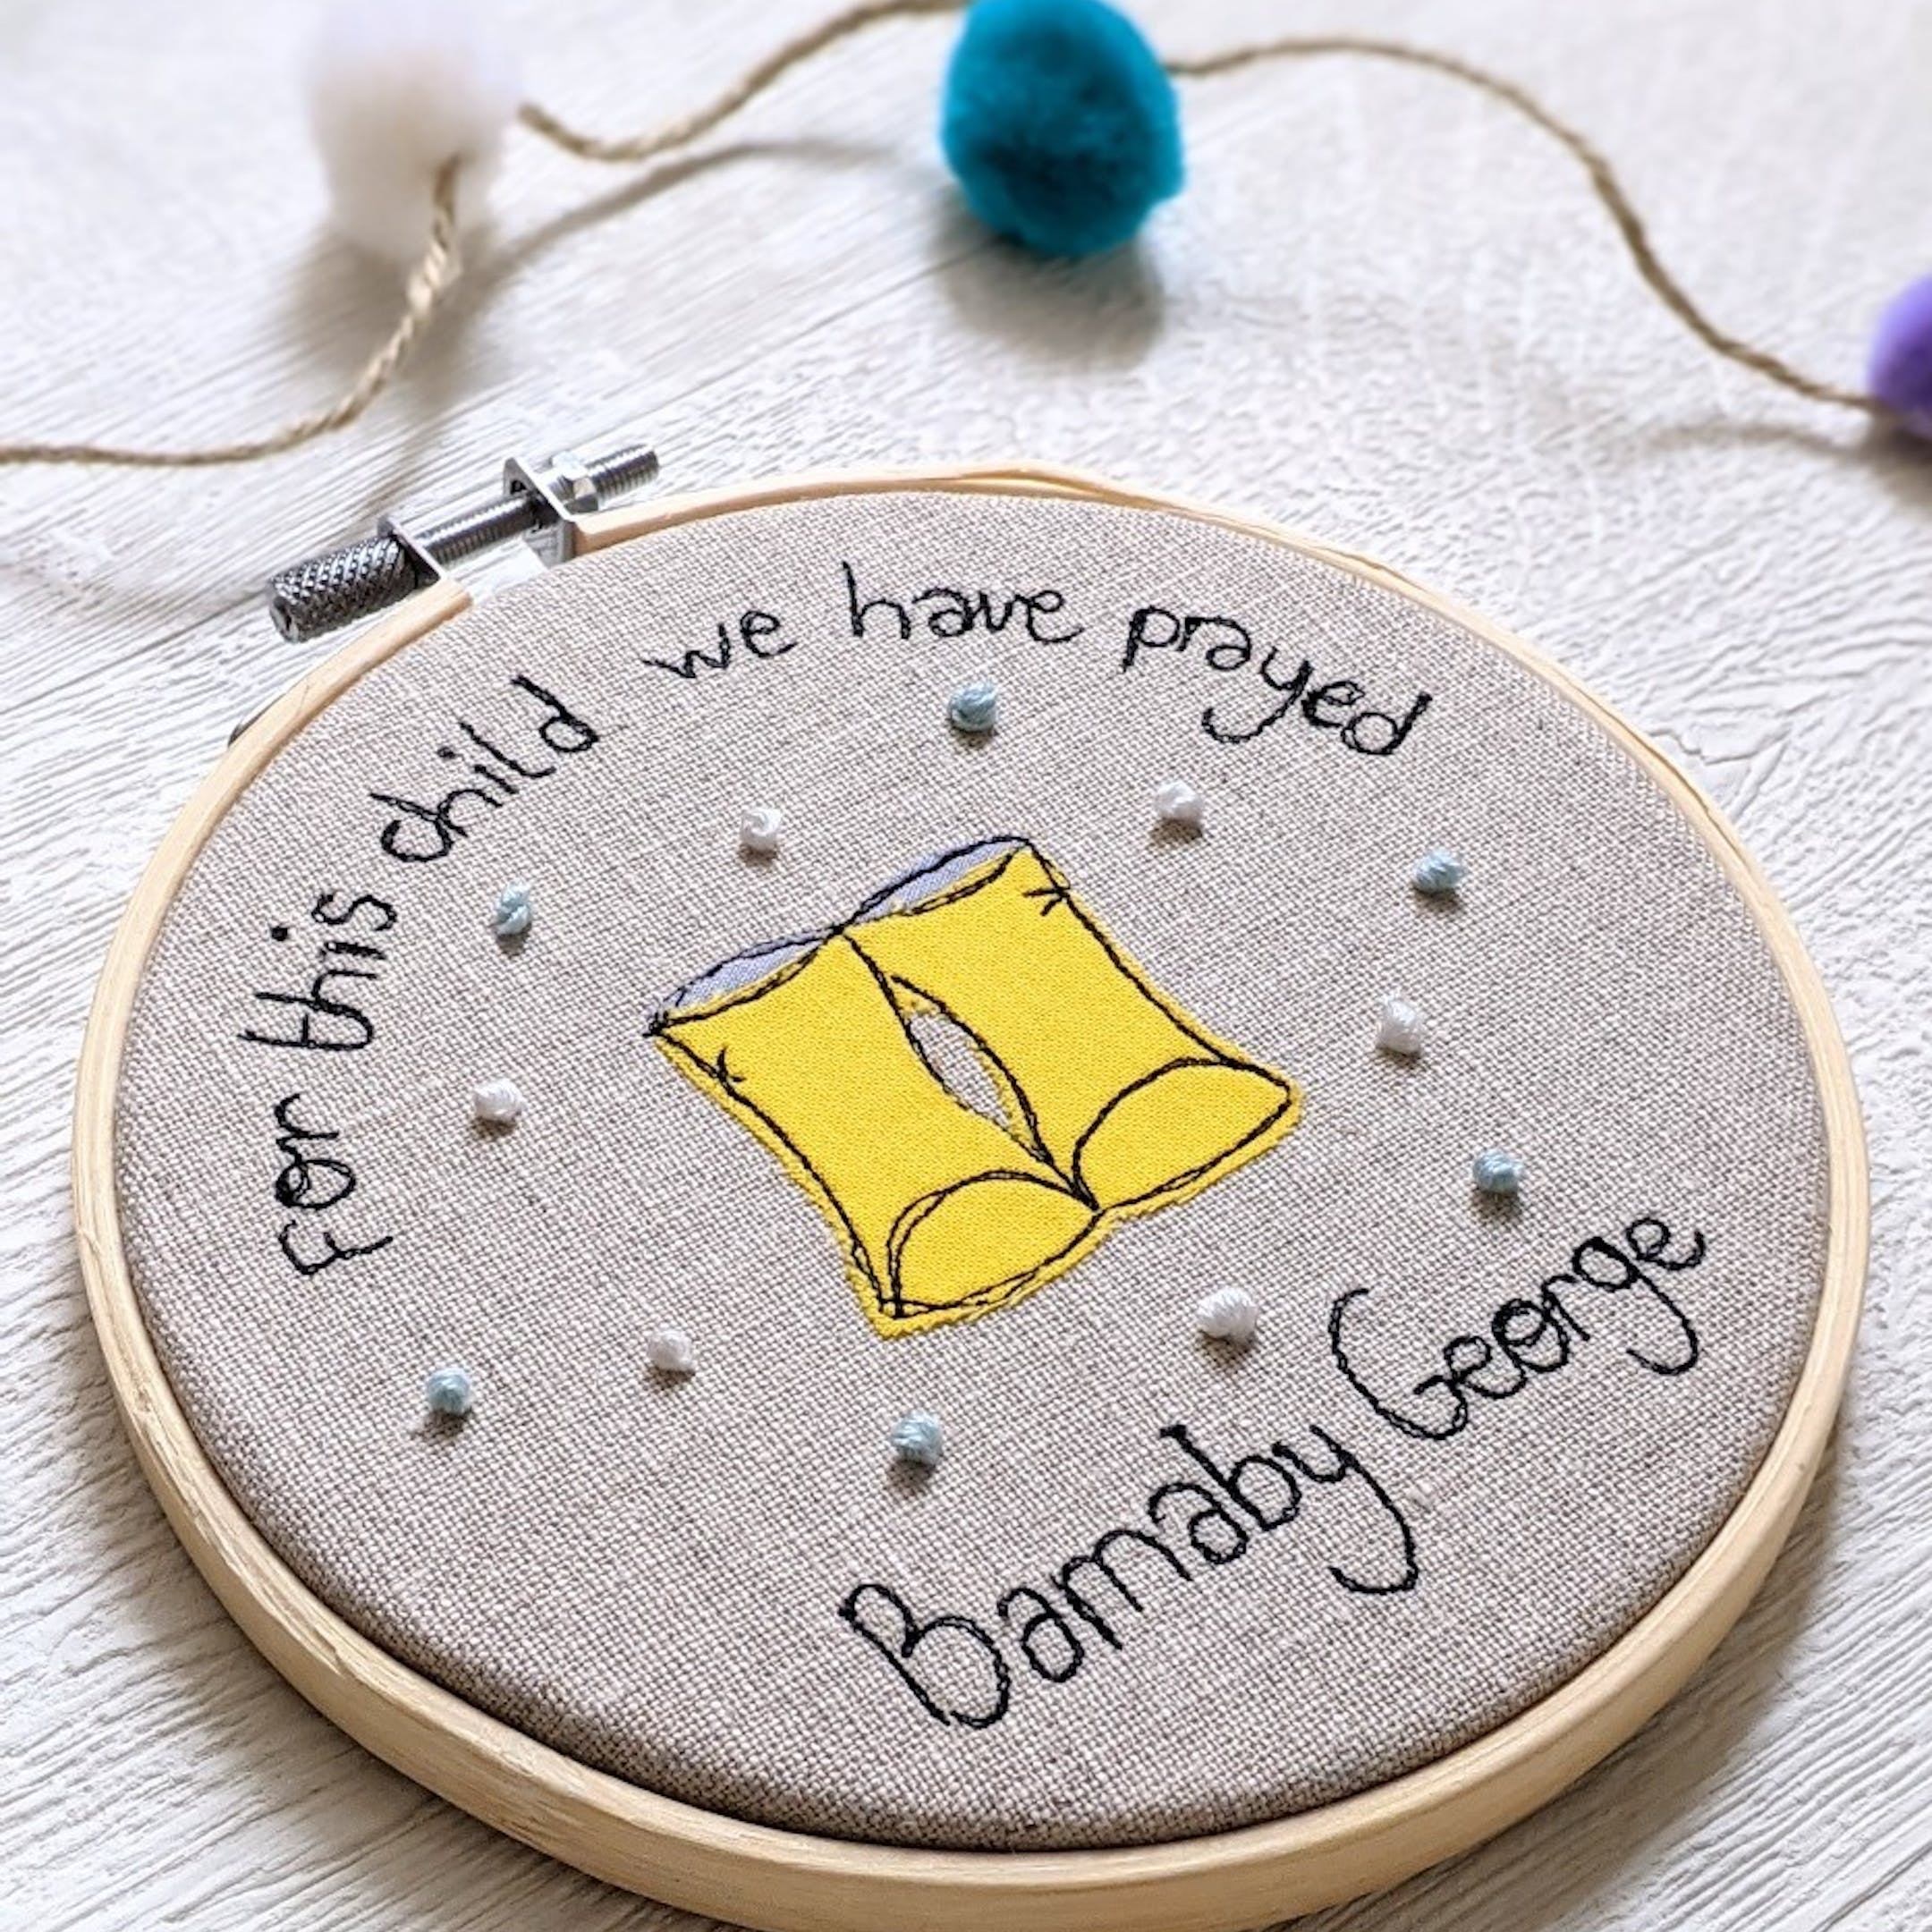 Ellen Hopkin Creates For This Child Embroidery Hoop | Cheerfully Given - Religious New Baby Gifts